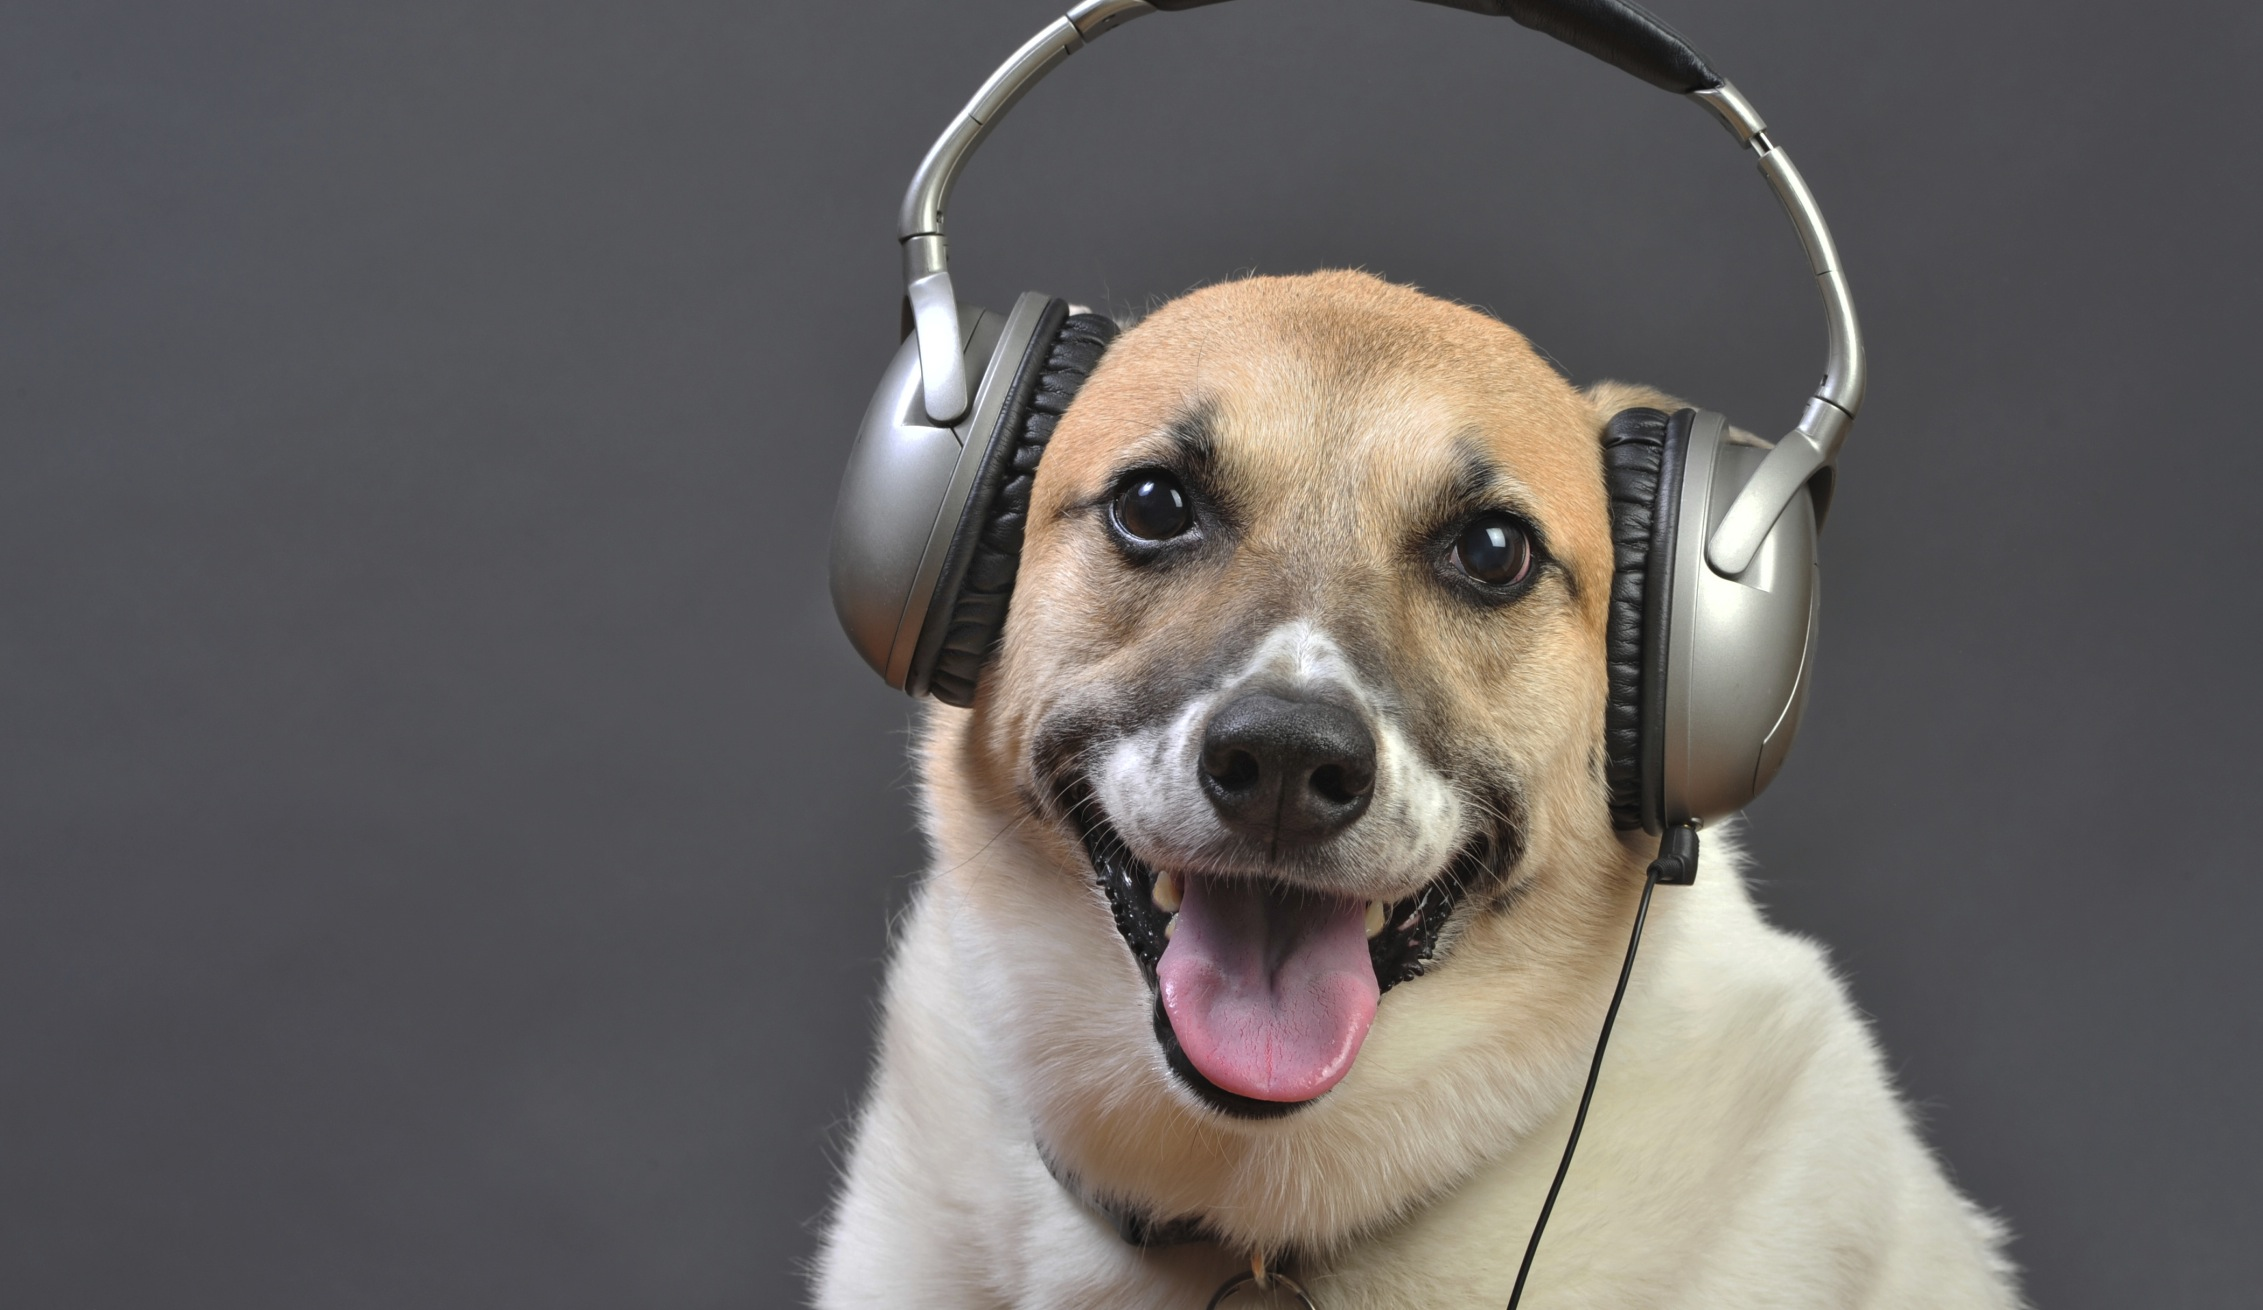 funny dog wearing headset